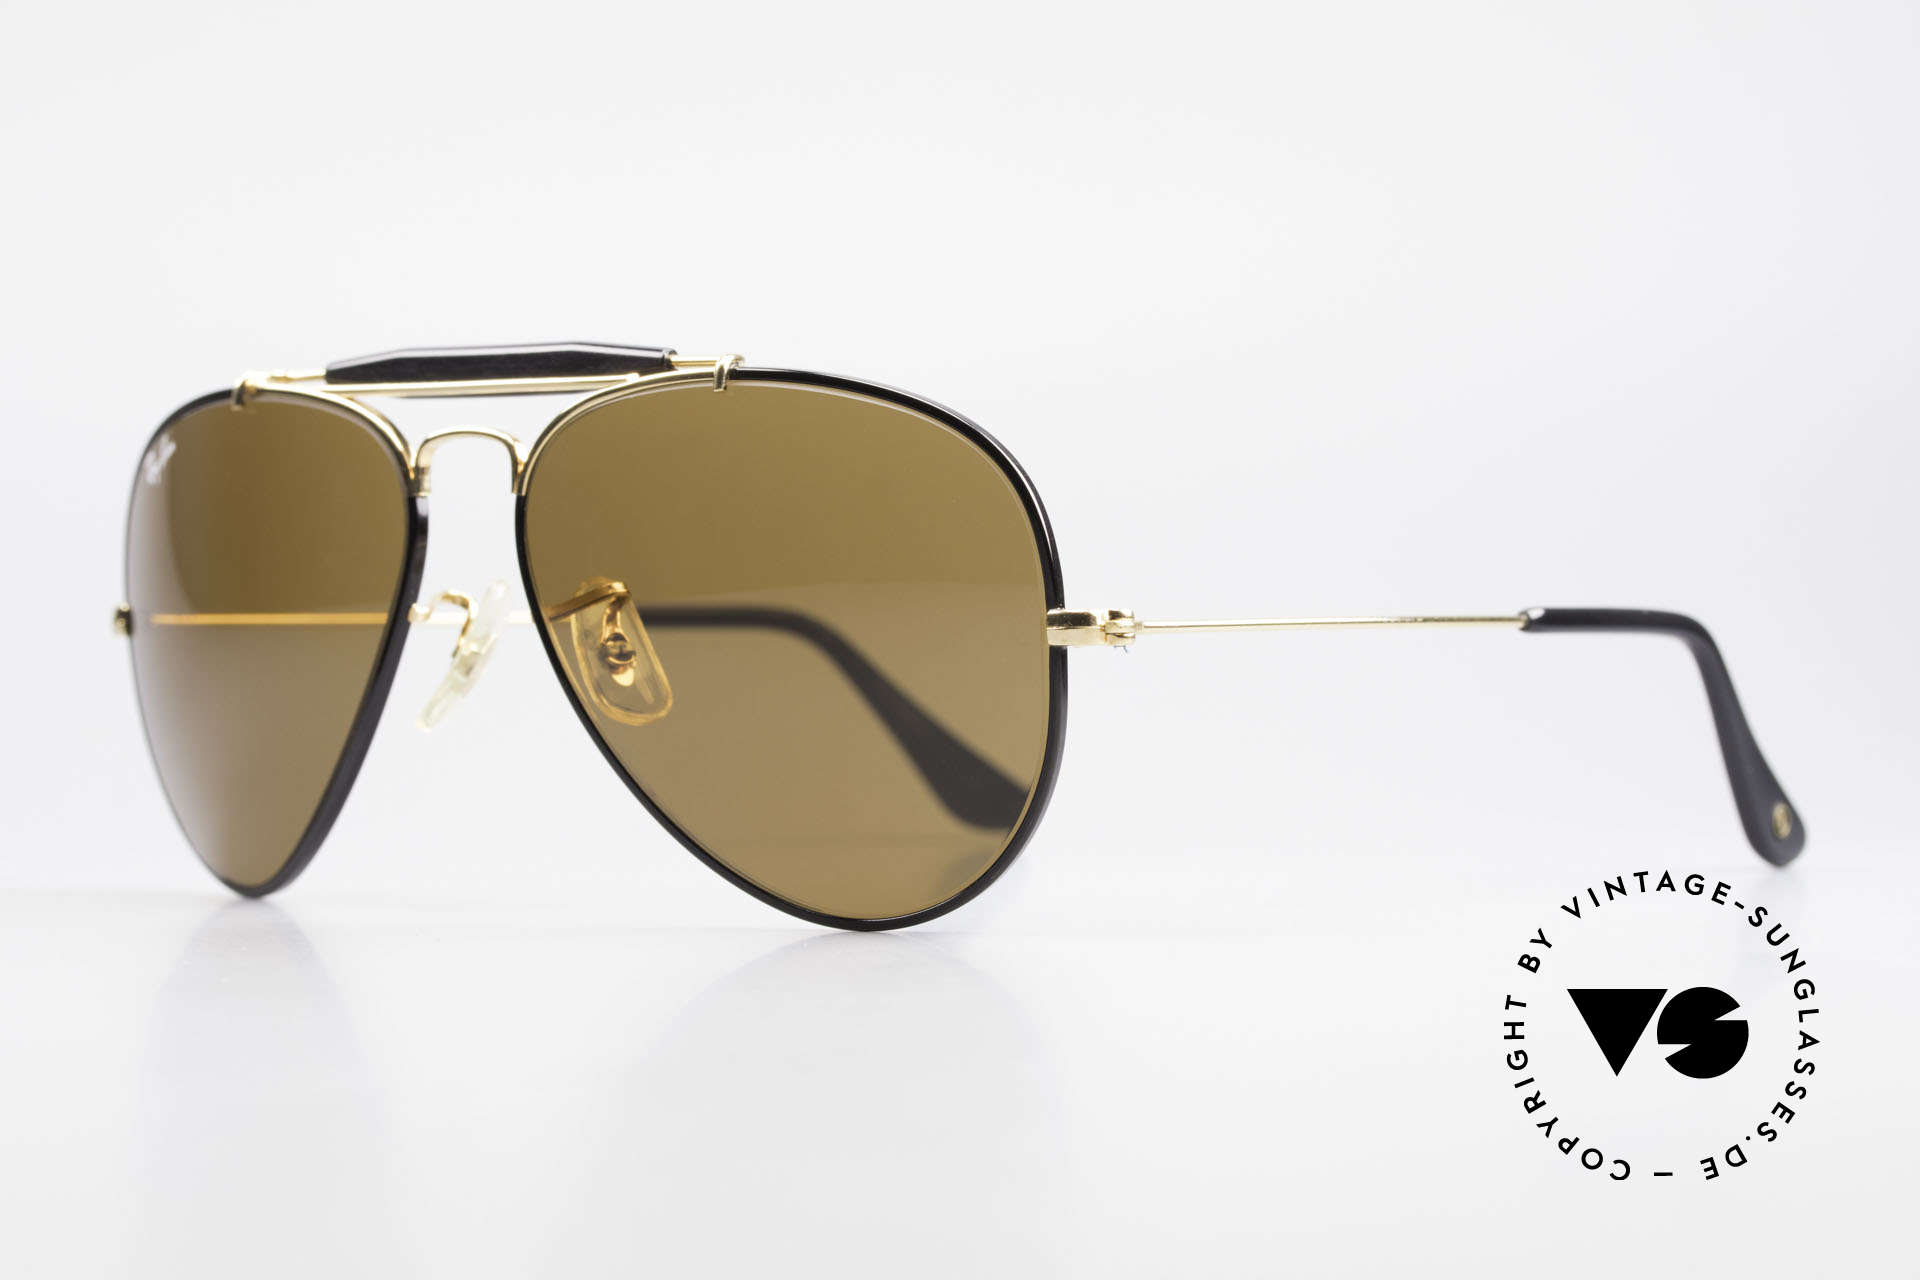 Ray Ban Outdoorsman Precious Metals Ray-Ban USA, with 24 carat GOLD-PLATED frame components, Made for Men and Women